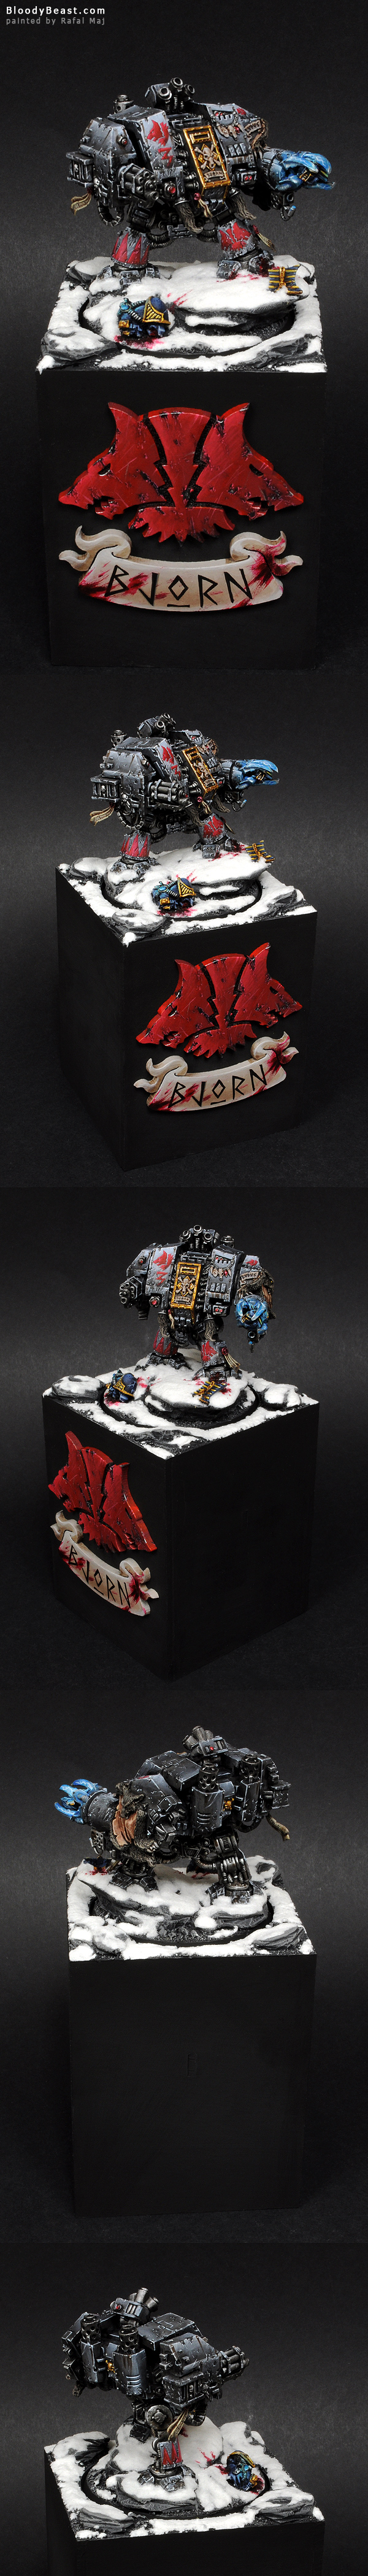 Space Wolves Bjorn The Fell-Handed on Plinth painted by Rafal Maj (BloodyBeast.com)